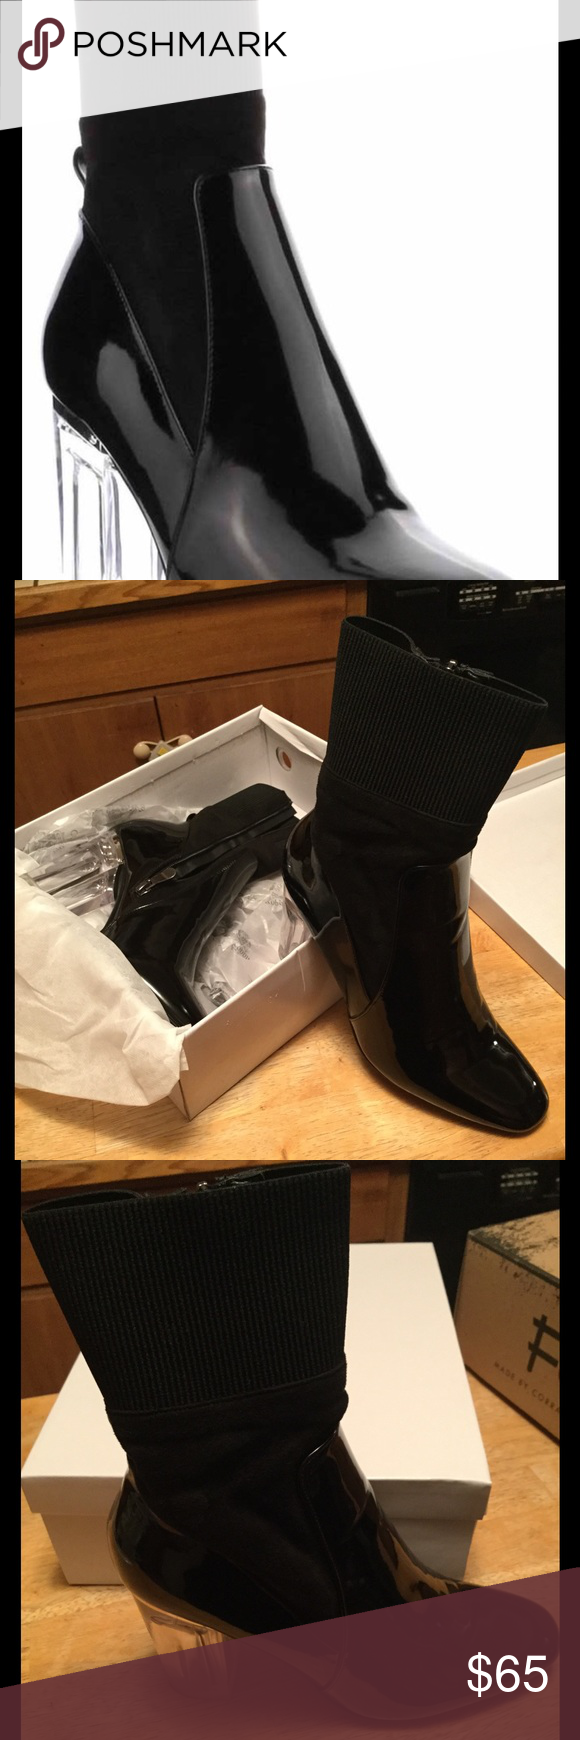 Black Patent and Cloth Boot This boot speaks for itself, when you walk out in this get ready to count the compliments!  Super comfortable and stylish. Soft Interior Lining ...Side Zipper, with a  3 inch heel Shoes Ankle Boots & Booties